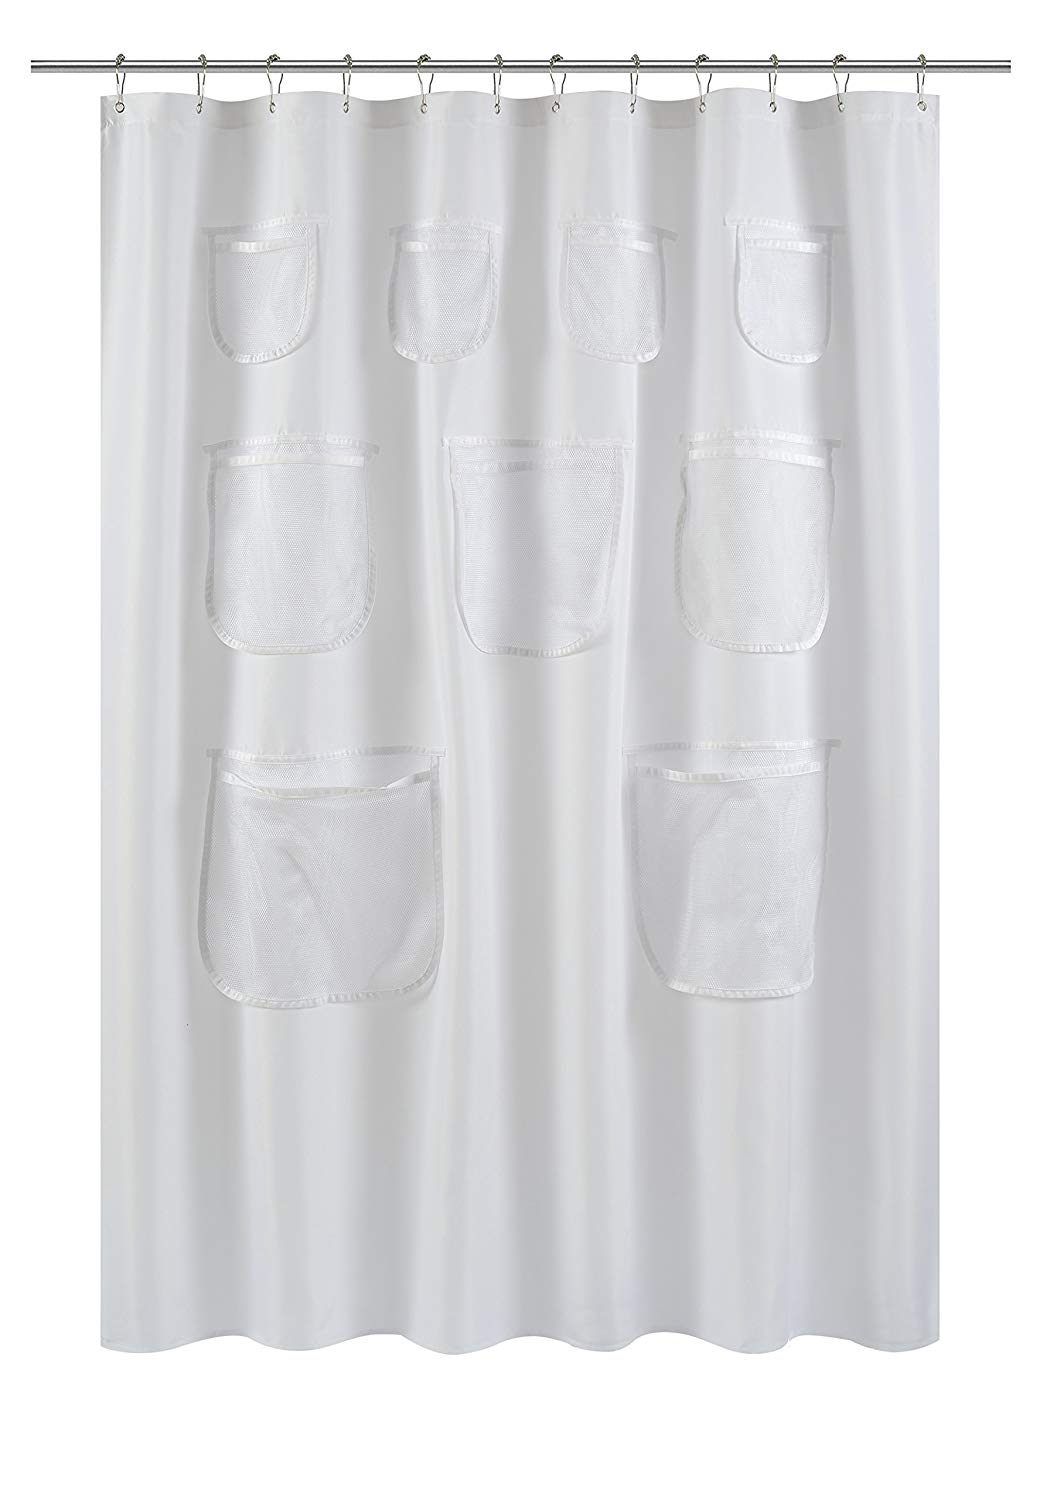 Shower Curtain Liner.   Shop  Fabric liner that is mildew-resistant and washable.